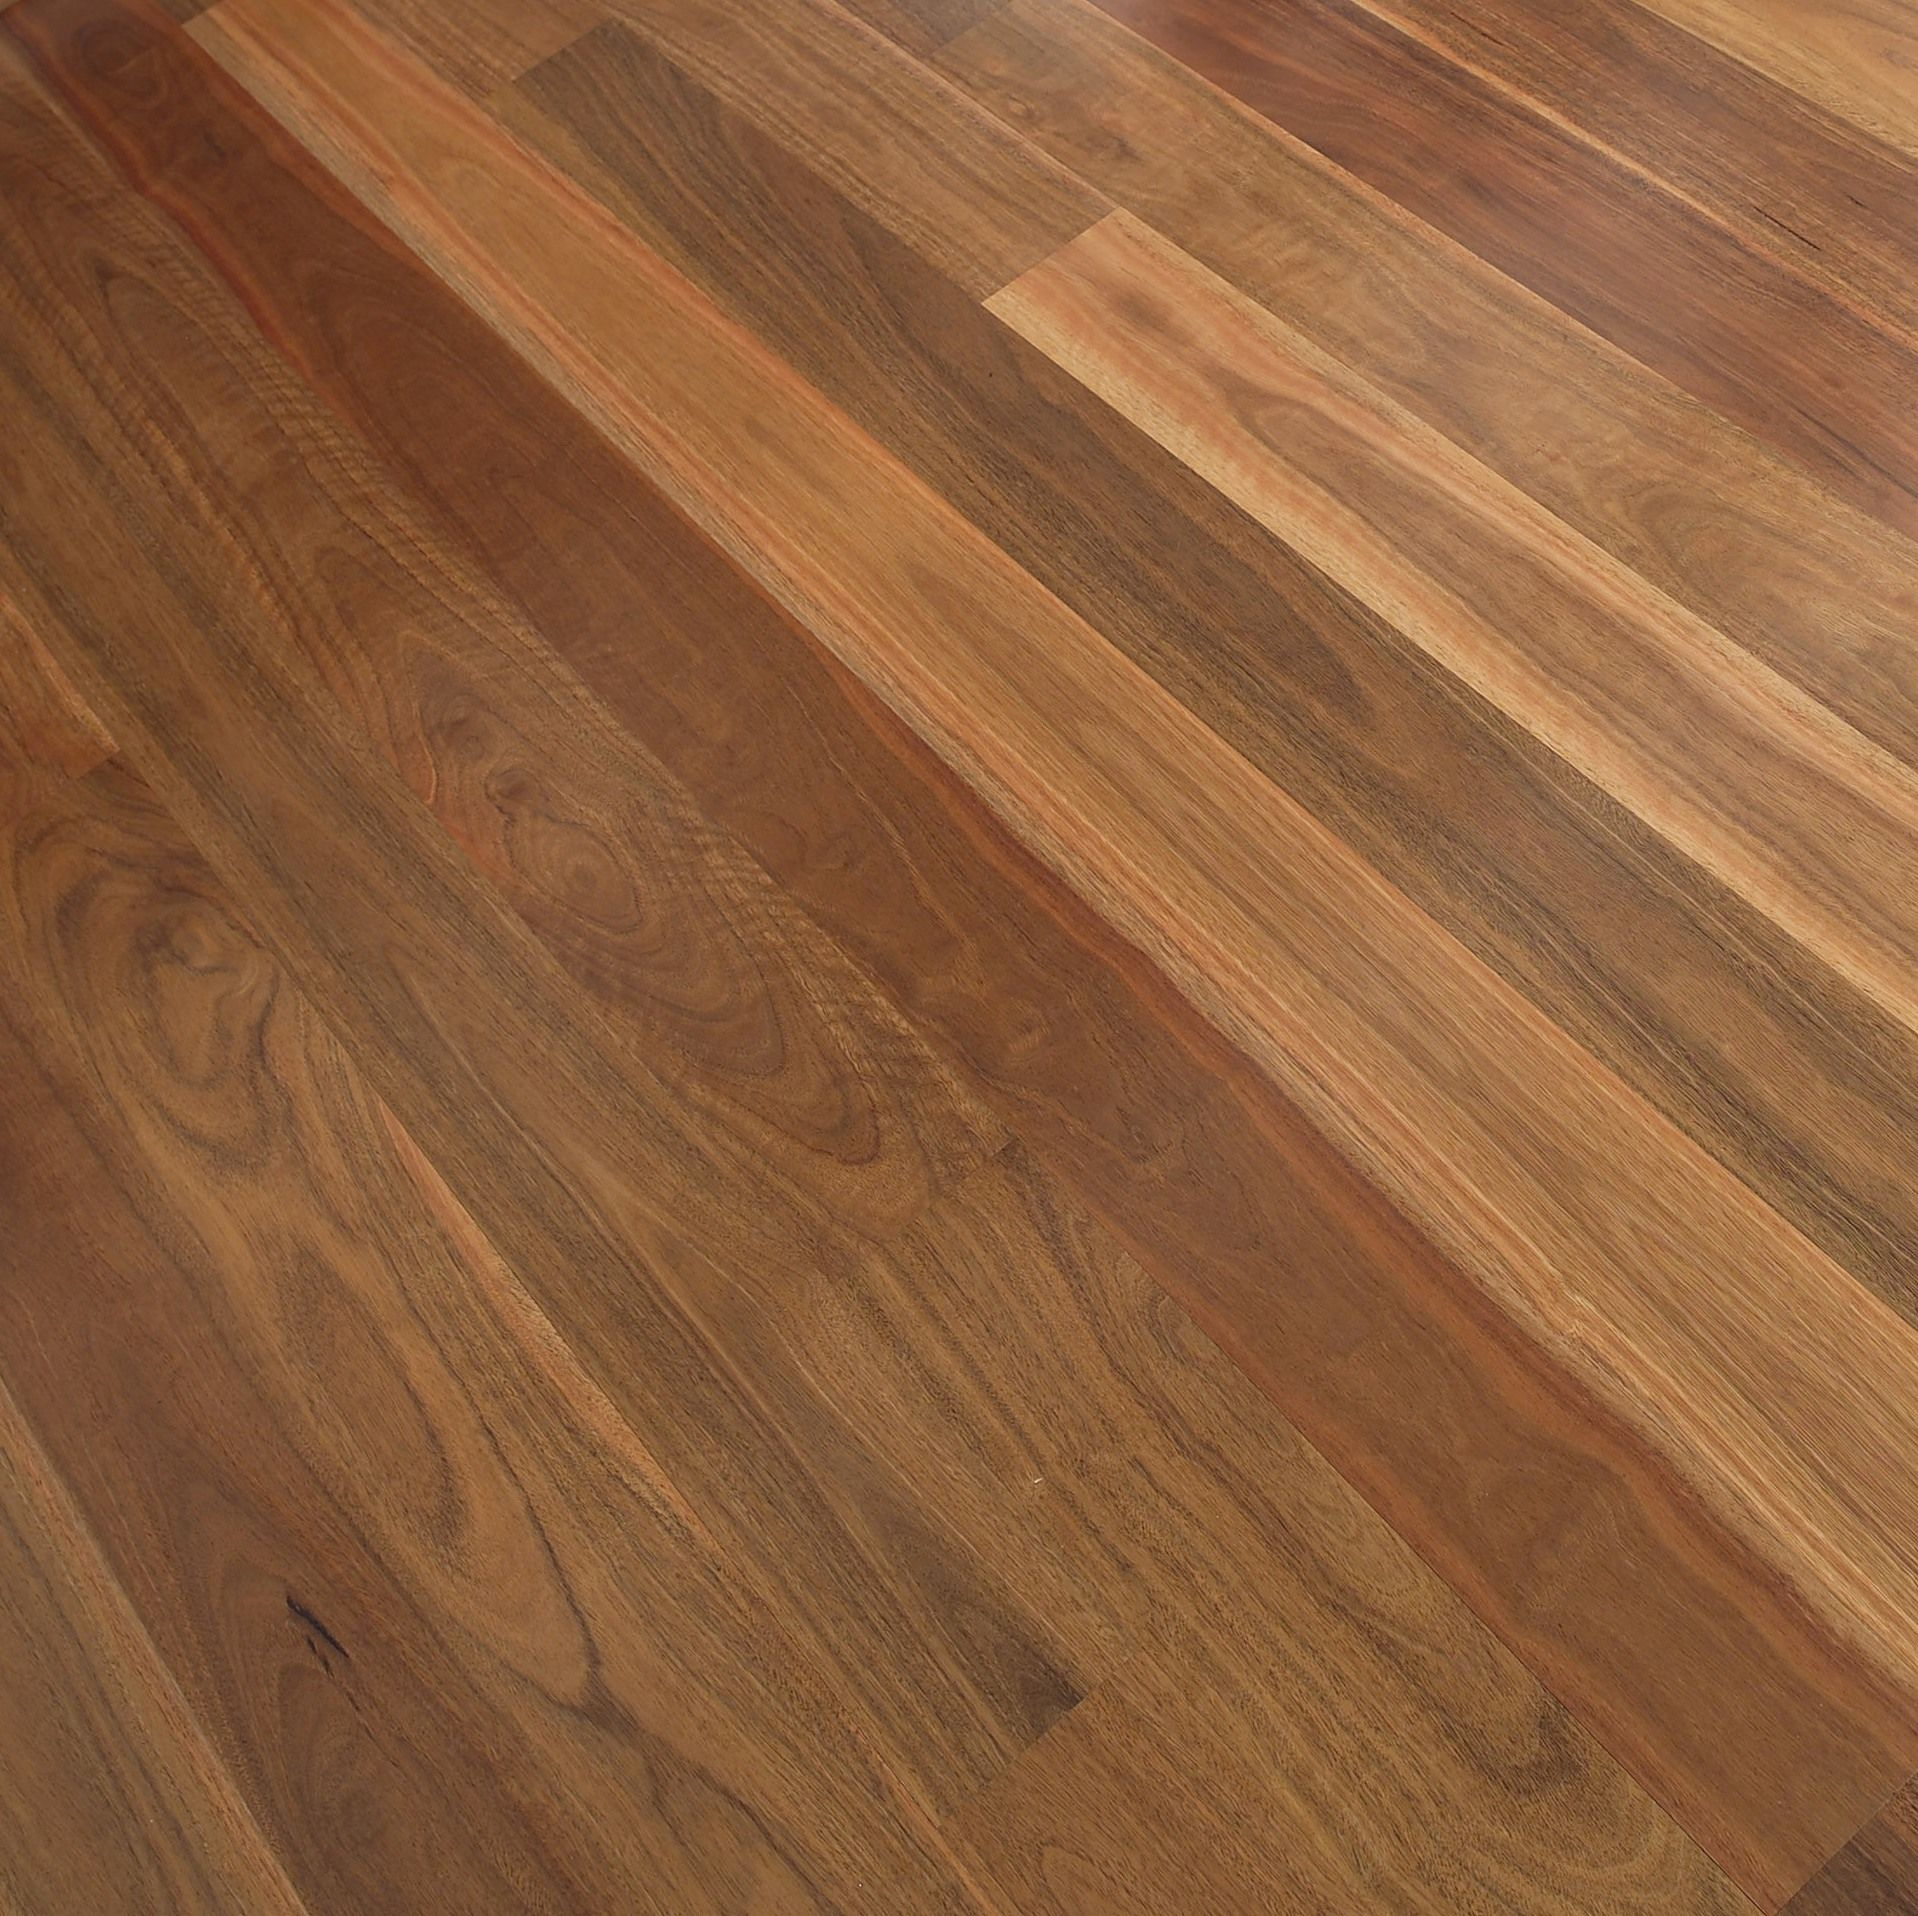 Flooring spotted gum 85x19mm lm t em aust std bunnings flooring spotted gum 85x19mm lm t em aust std bunnings warehouse dailygadgetfo Image collections